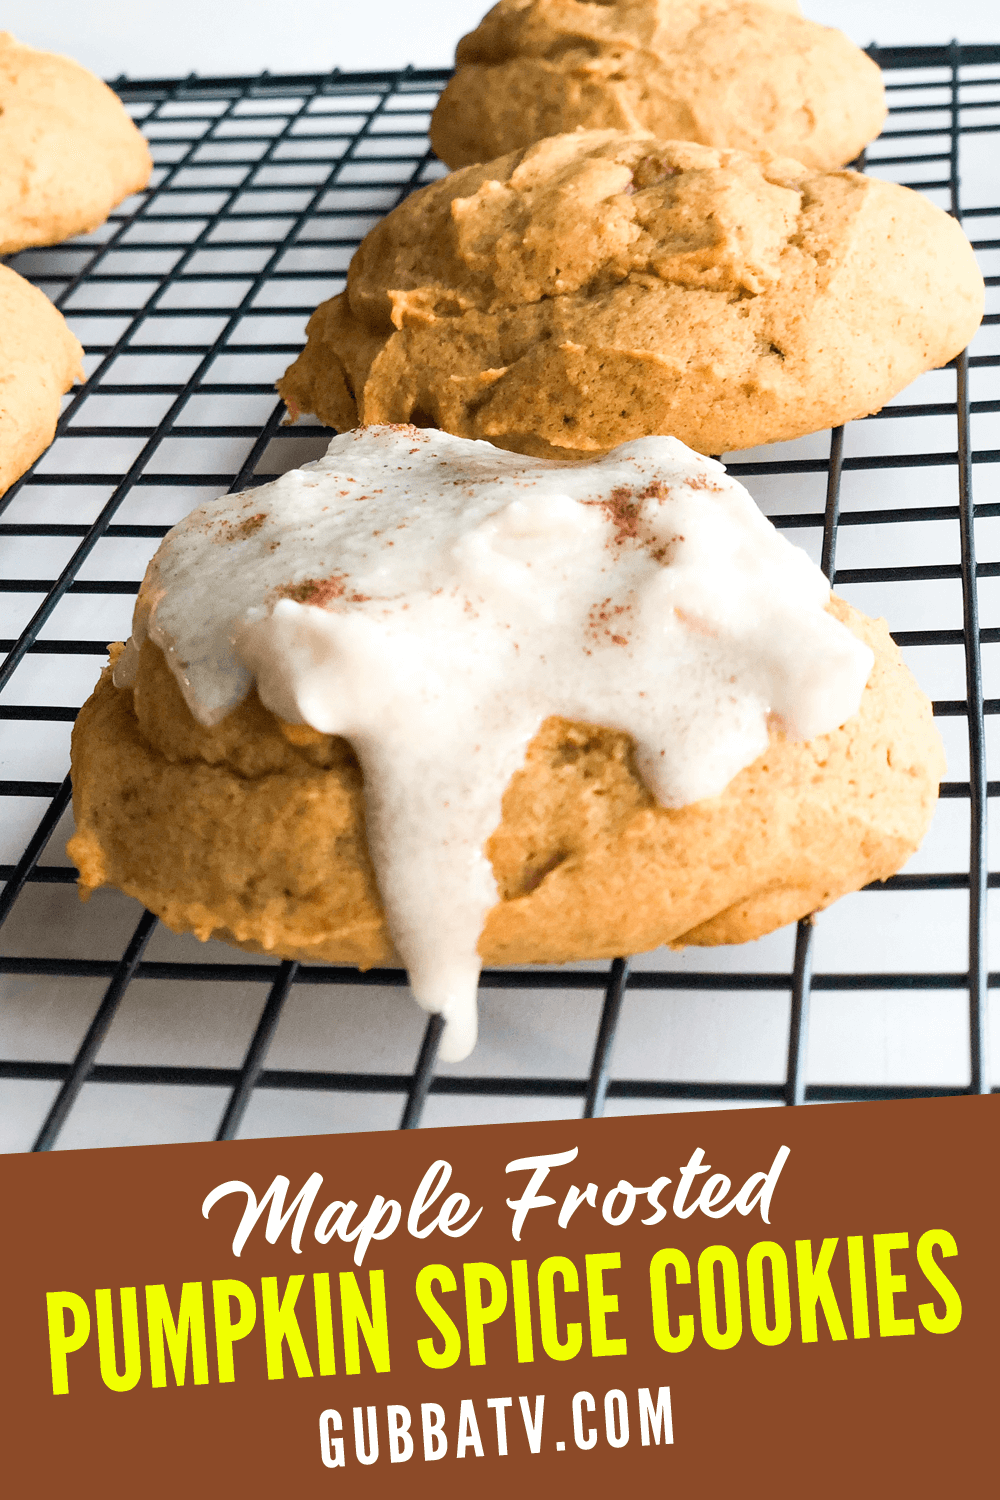 Maple Frosted Pumpkin Spice Cookies